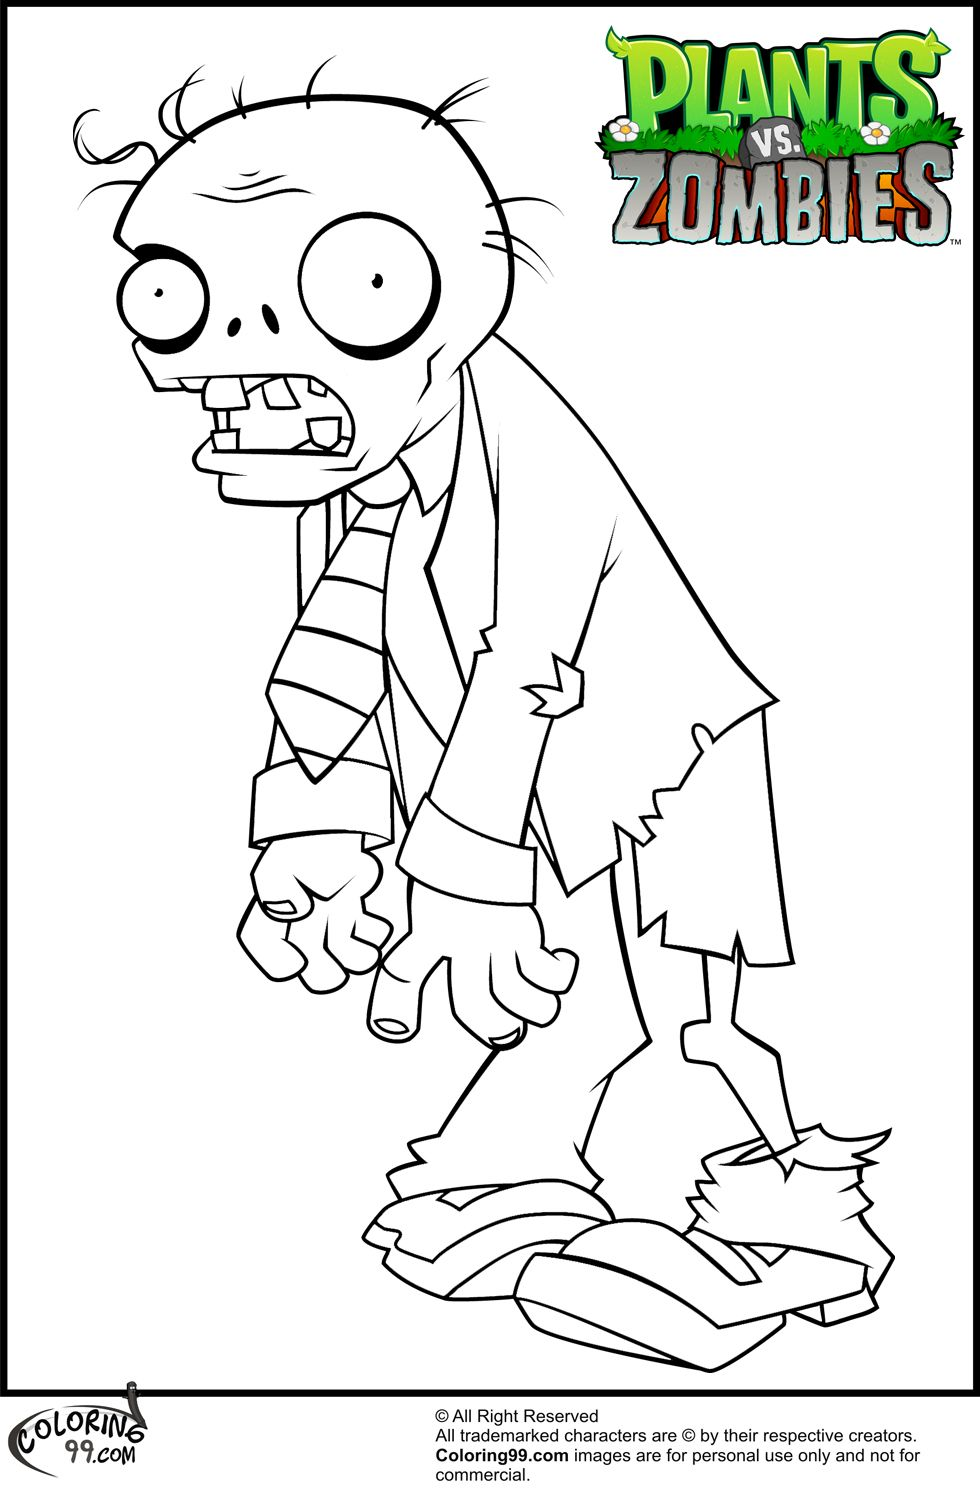 plants-vs-zombies-suit-zombie-coloring-pages.jpg (980×1500) | Plants ...